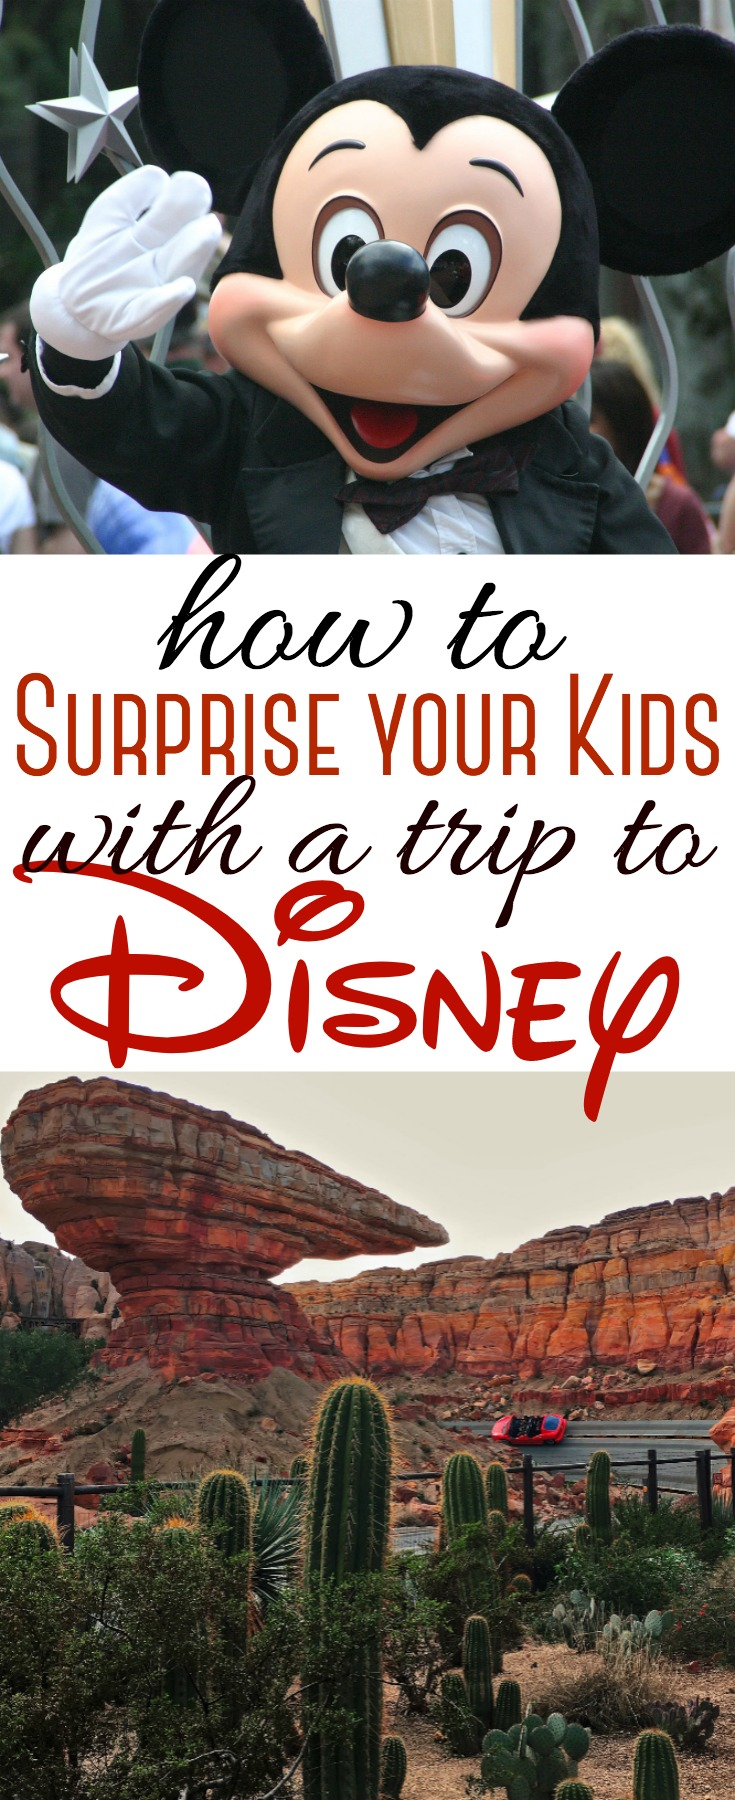 It's one of the happiest places on earth - and every child's dream! Surprise your kids with a trip to Disney and watch the excitement begin!